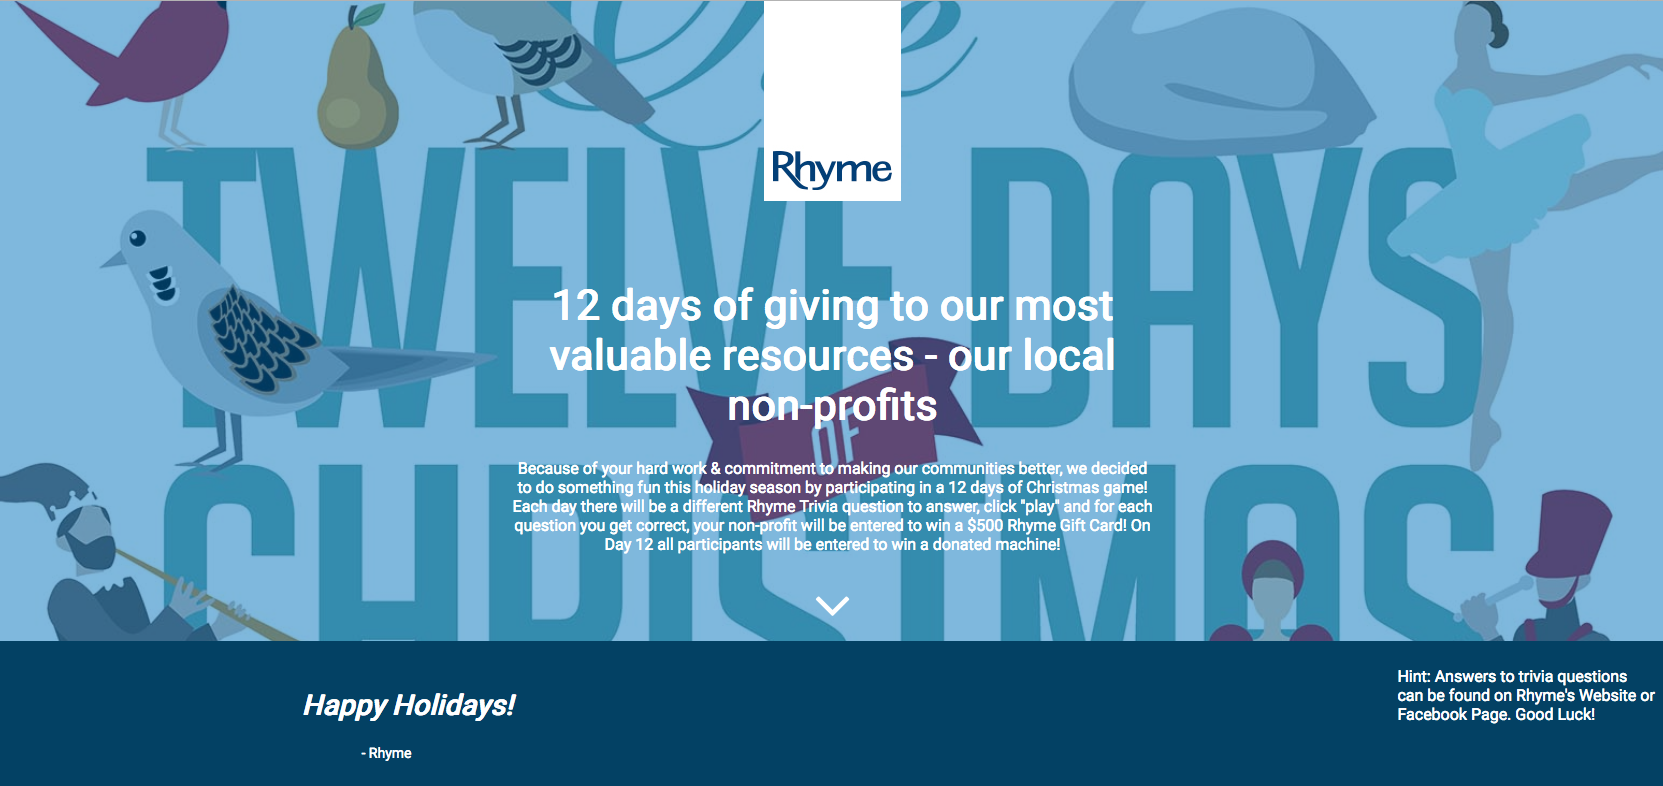 http://www.rhymebiz.com/sites/rhymebiz.com/assets/images/Newsroom/12-days-xmas-non-profits.png